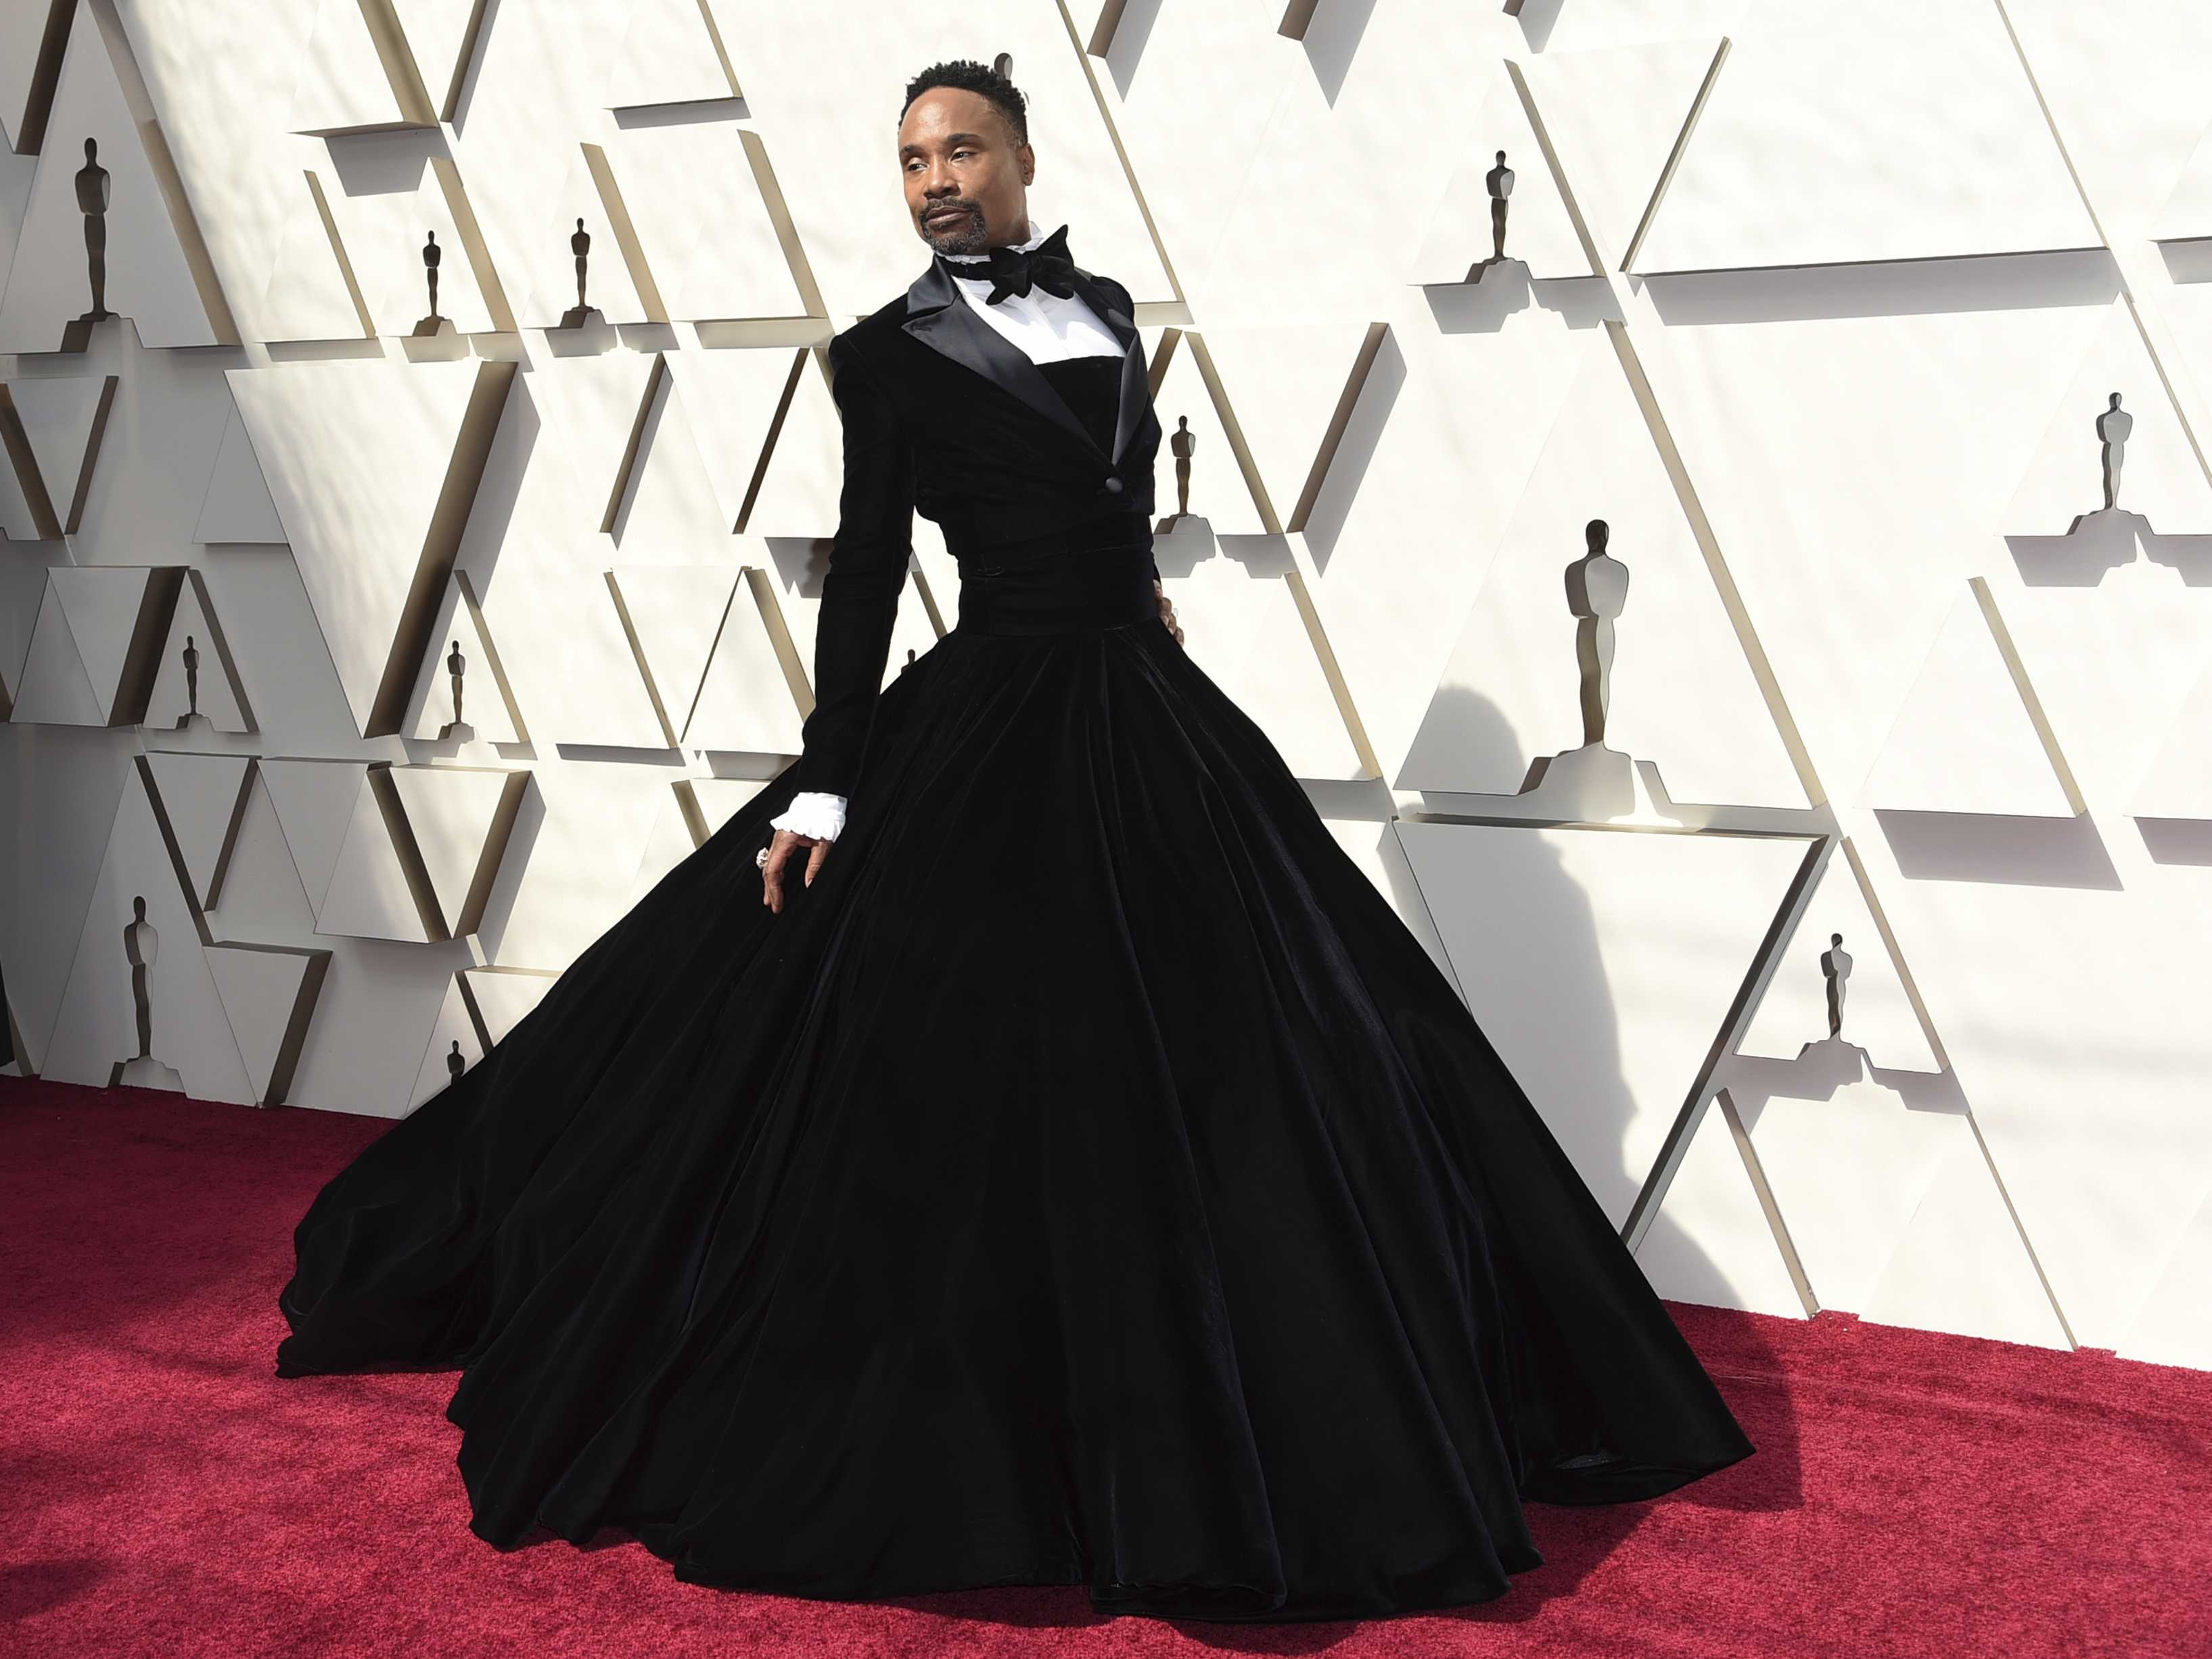 Billy Porter Speaks on Oscars Gown and Social Media Hate